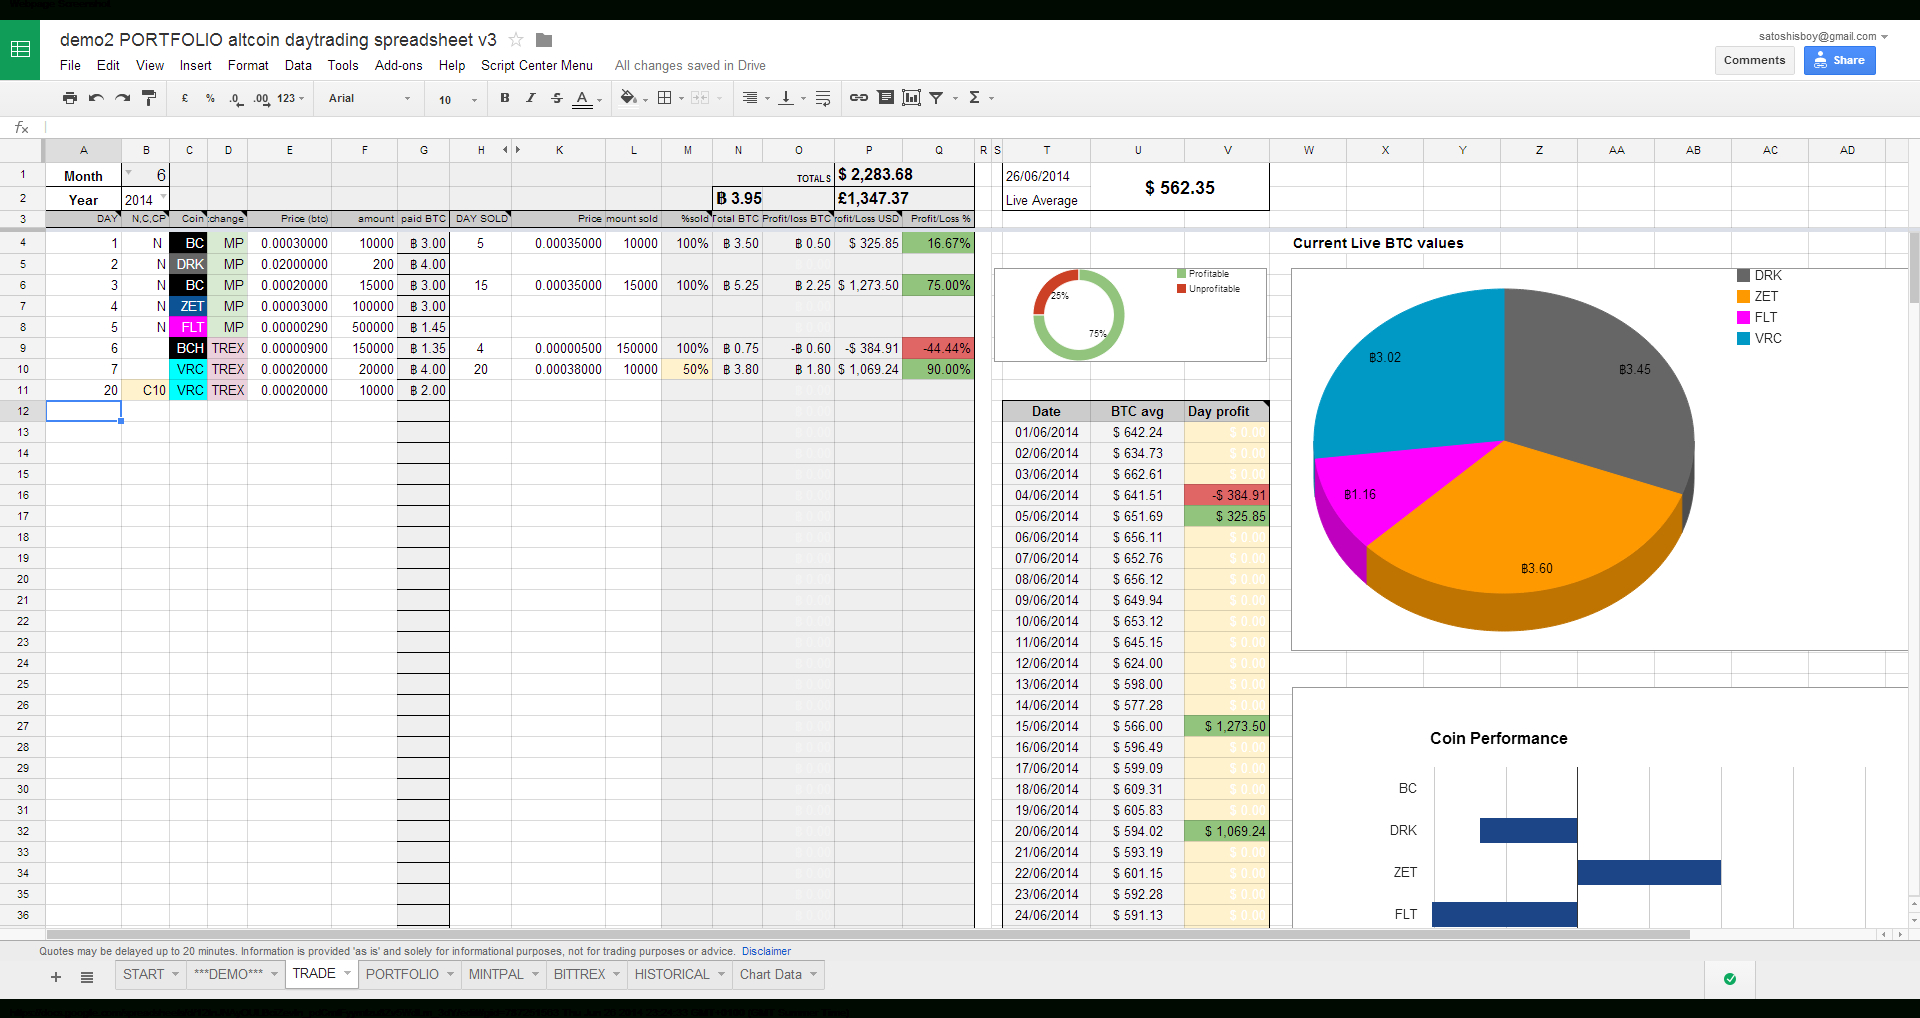 Bitcoin Trading Spreadsheet Regarding Where To Get Cryptocurrency Spreadsheet Crypto Trading Hub